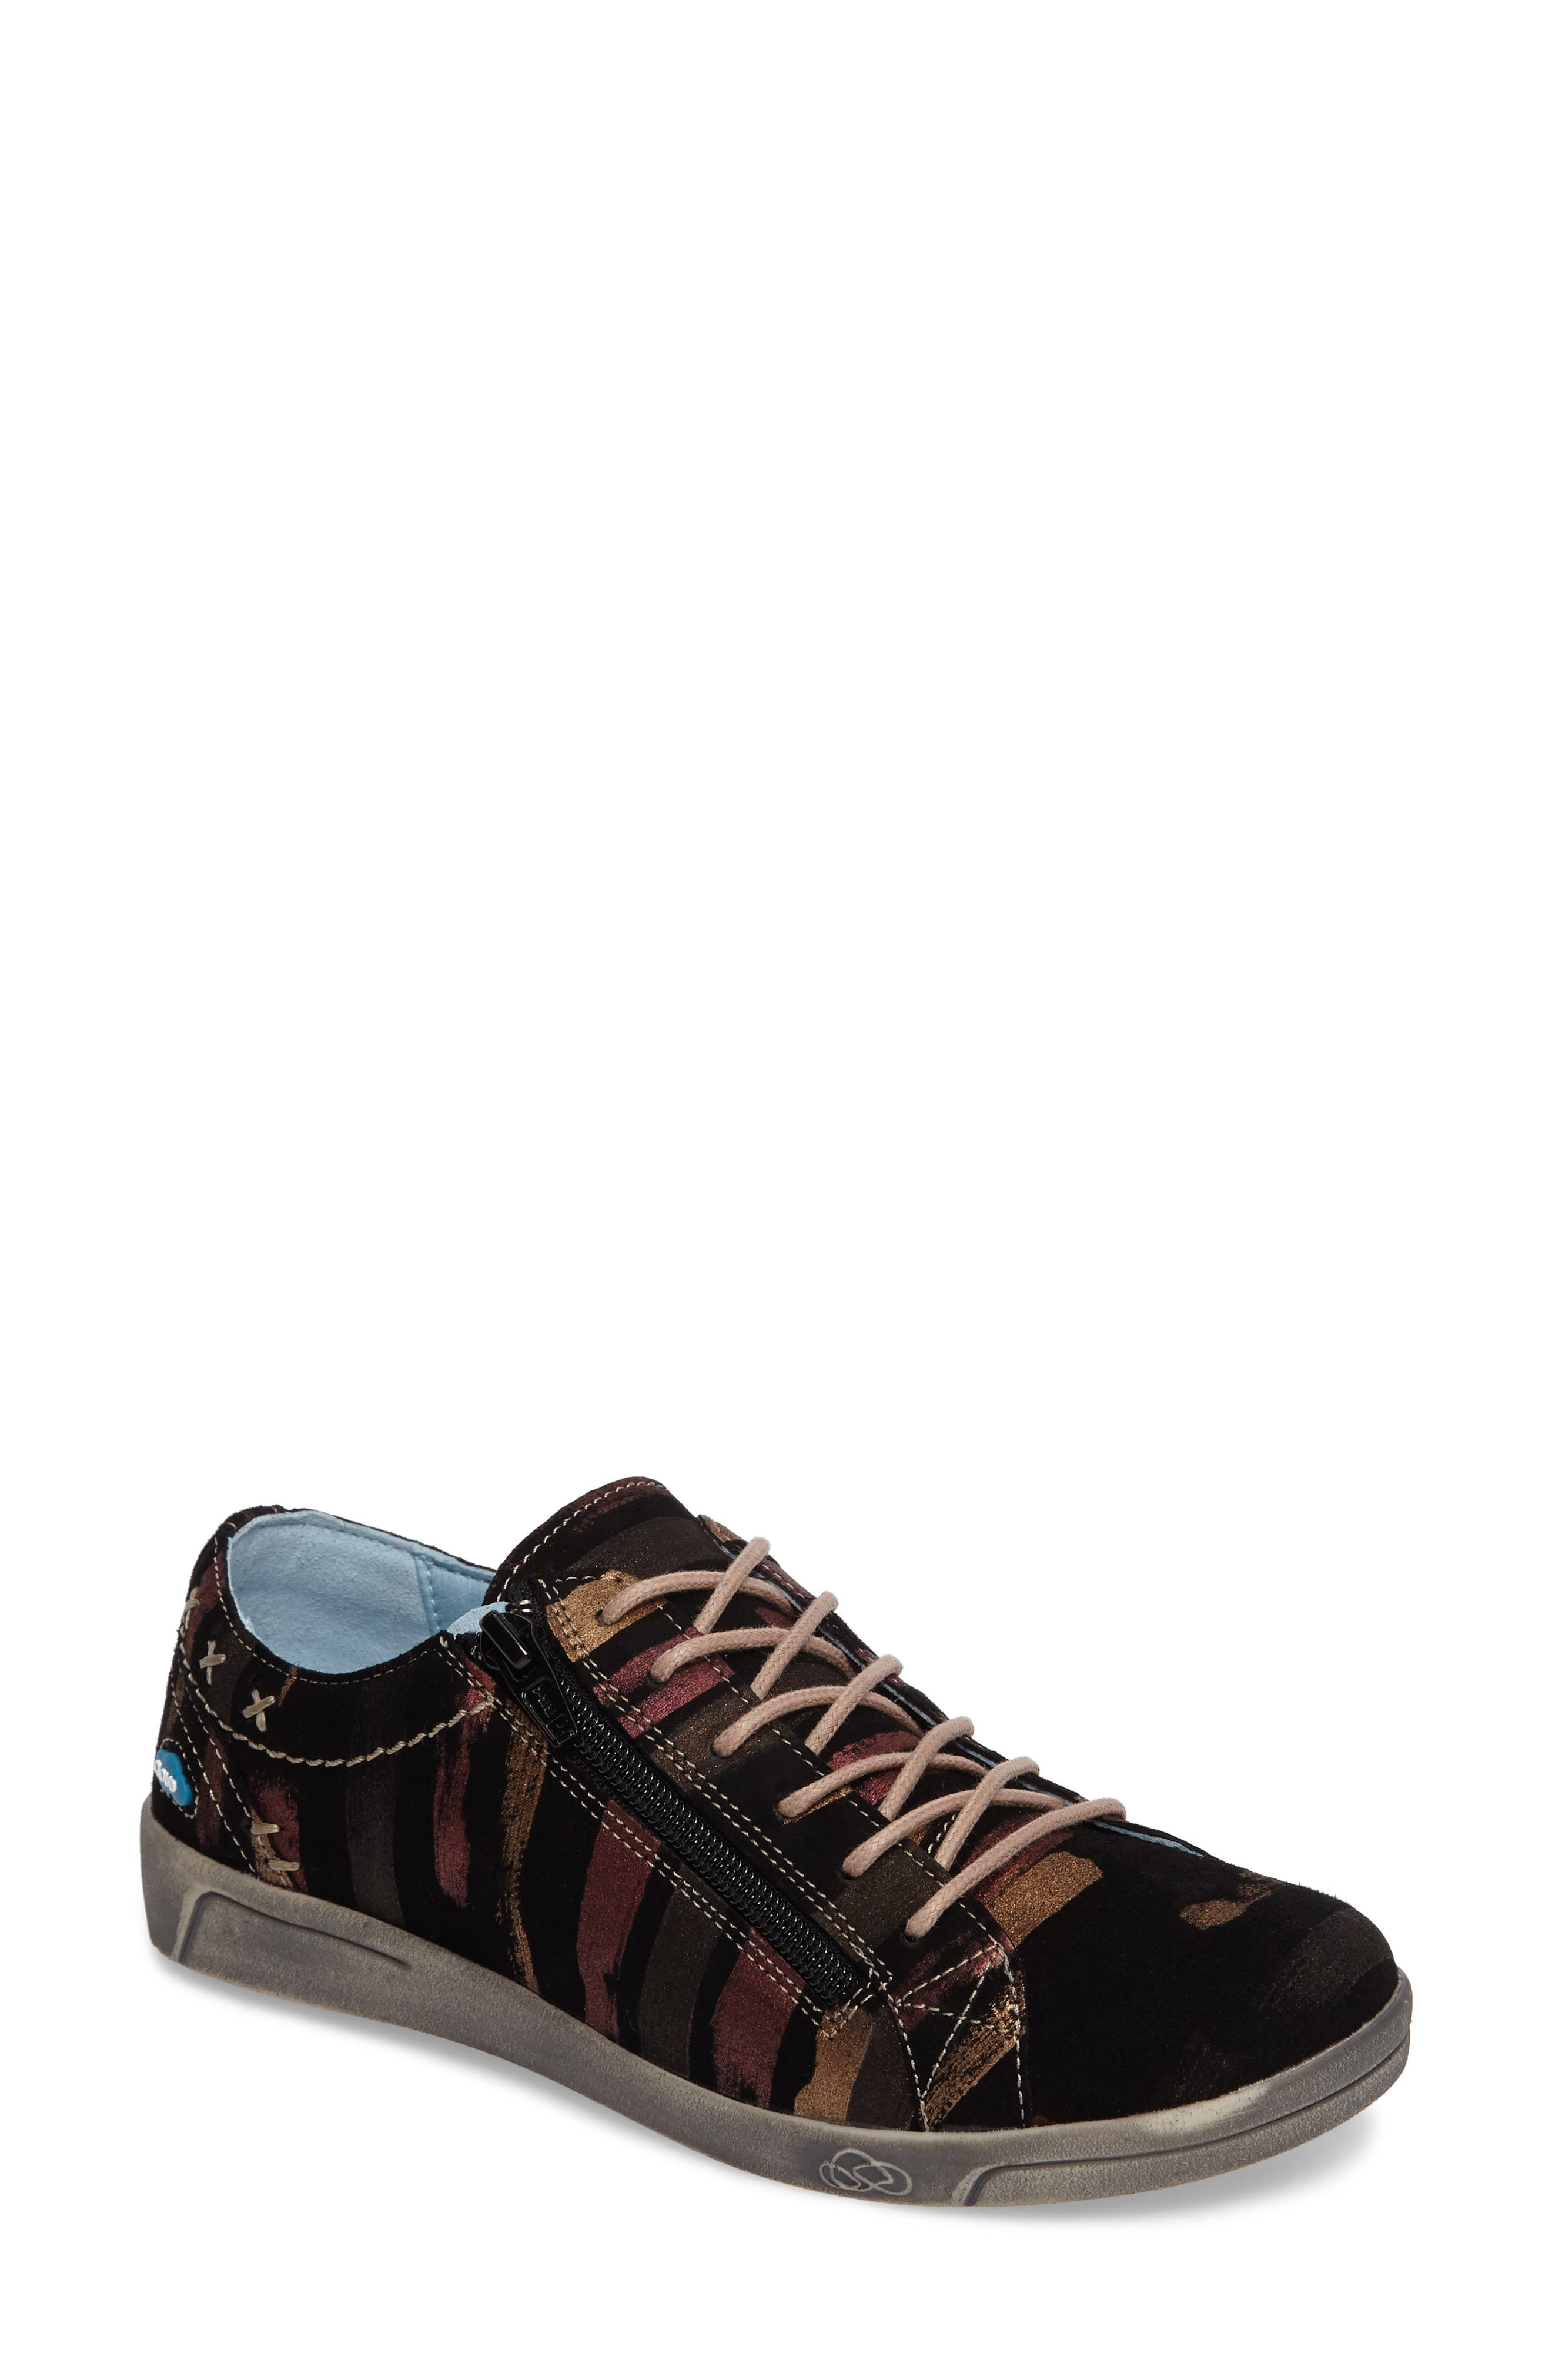 Aika Low Top Sneaker, Main, color, BLACK LEATHER